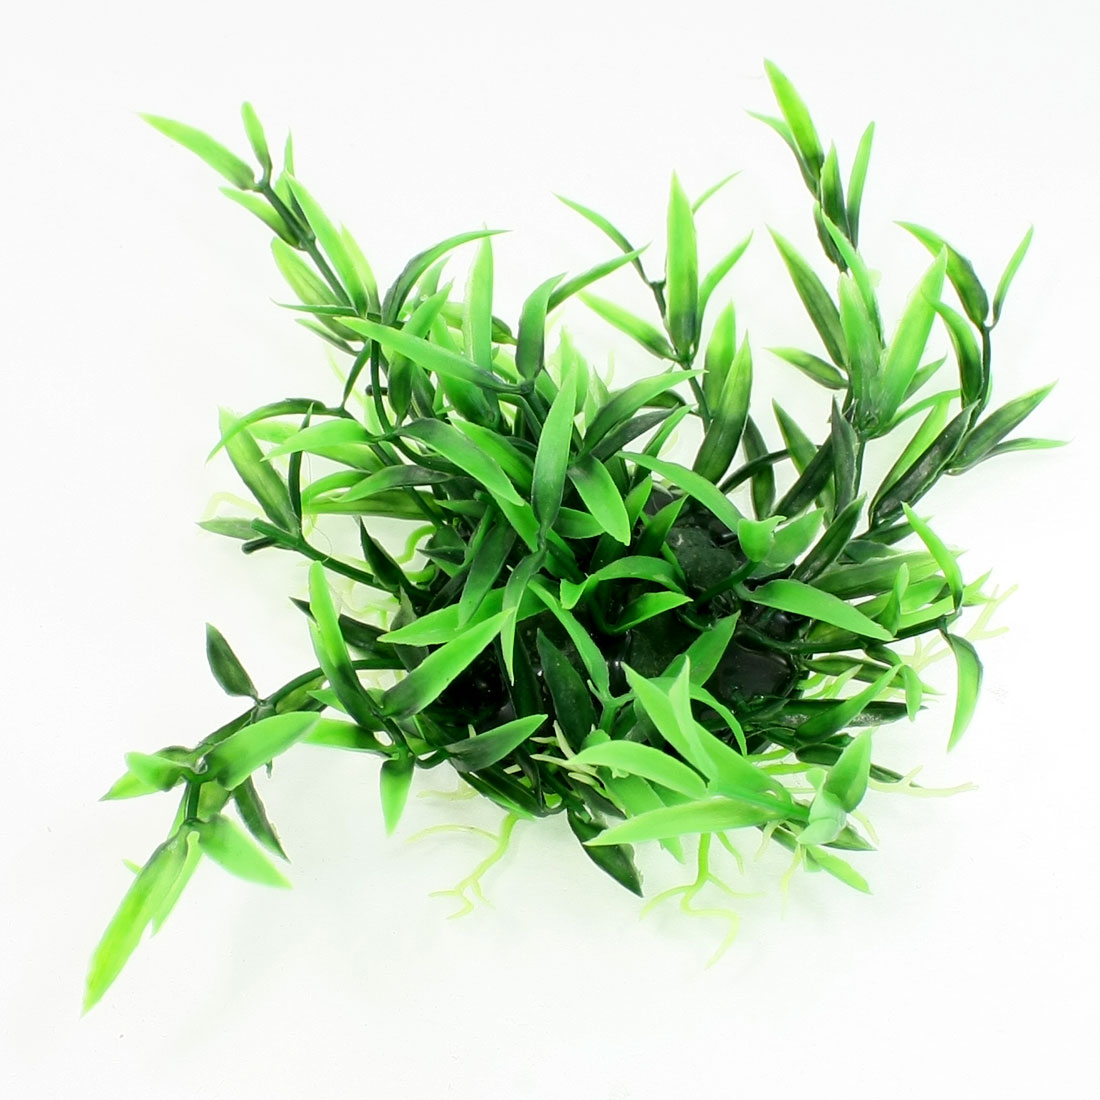 15cm x 18cm Emulational Green Plastic Water Plants for Aquarium Fish Tank